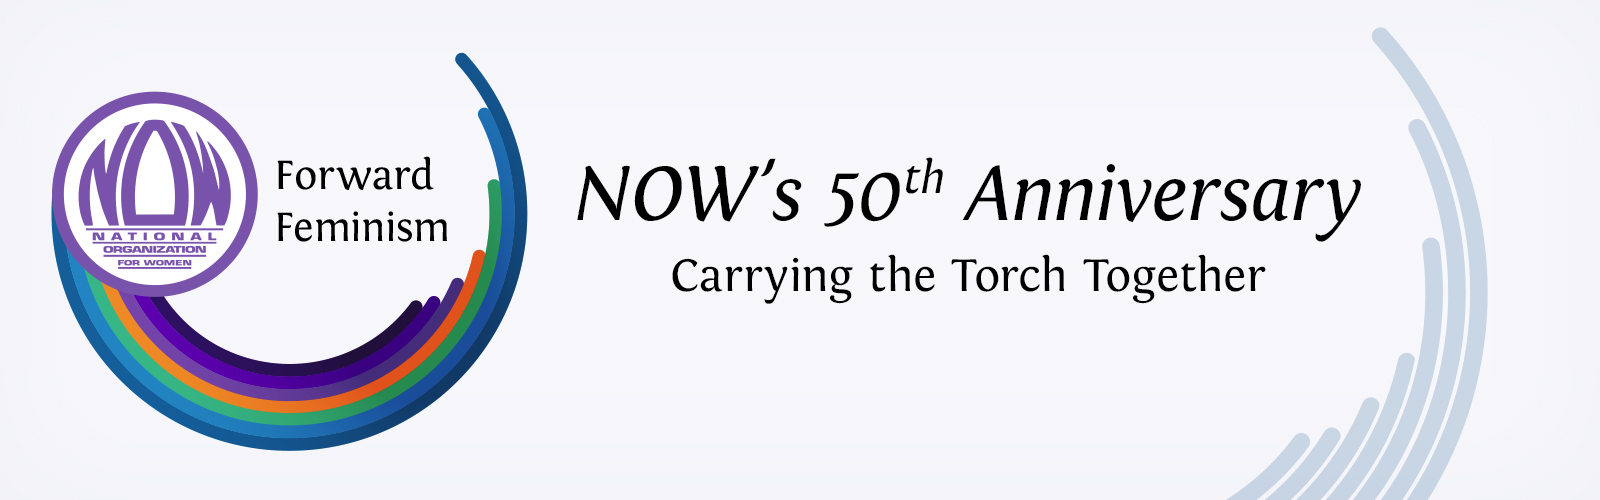 NOW's 50 Anniversary Conference Logo